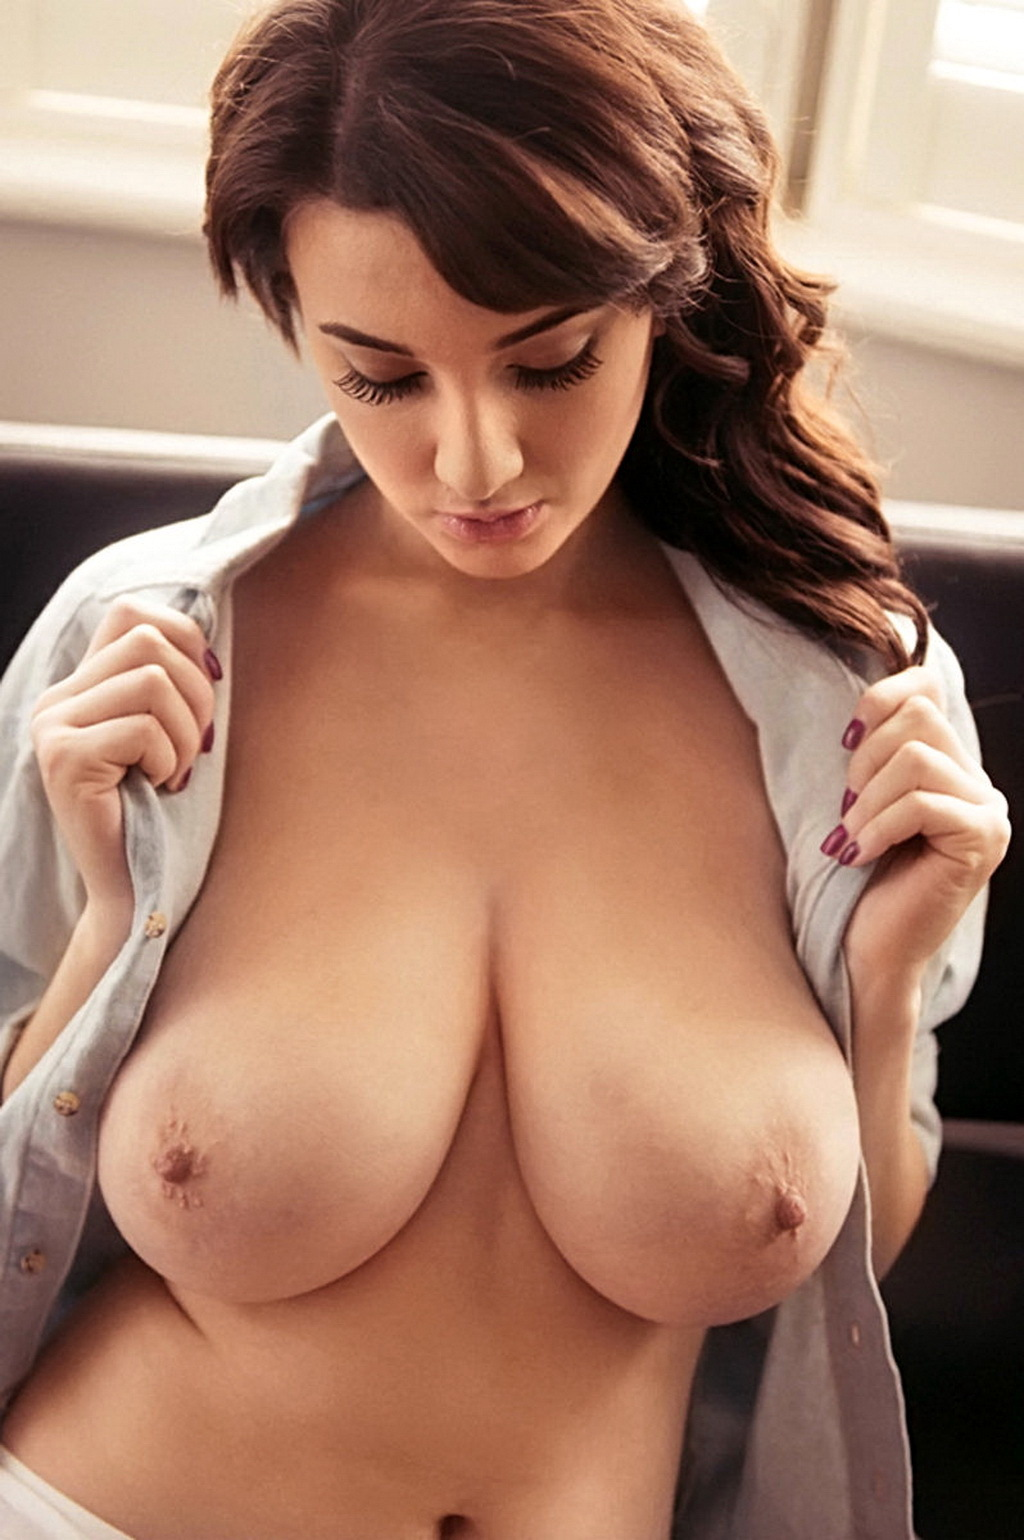 womens-boob-jobs-bond-boobs-sex